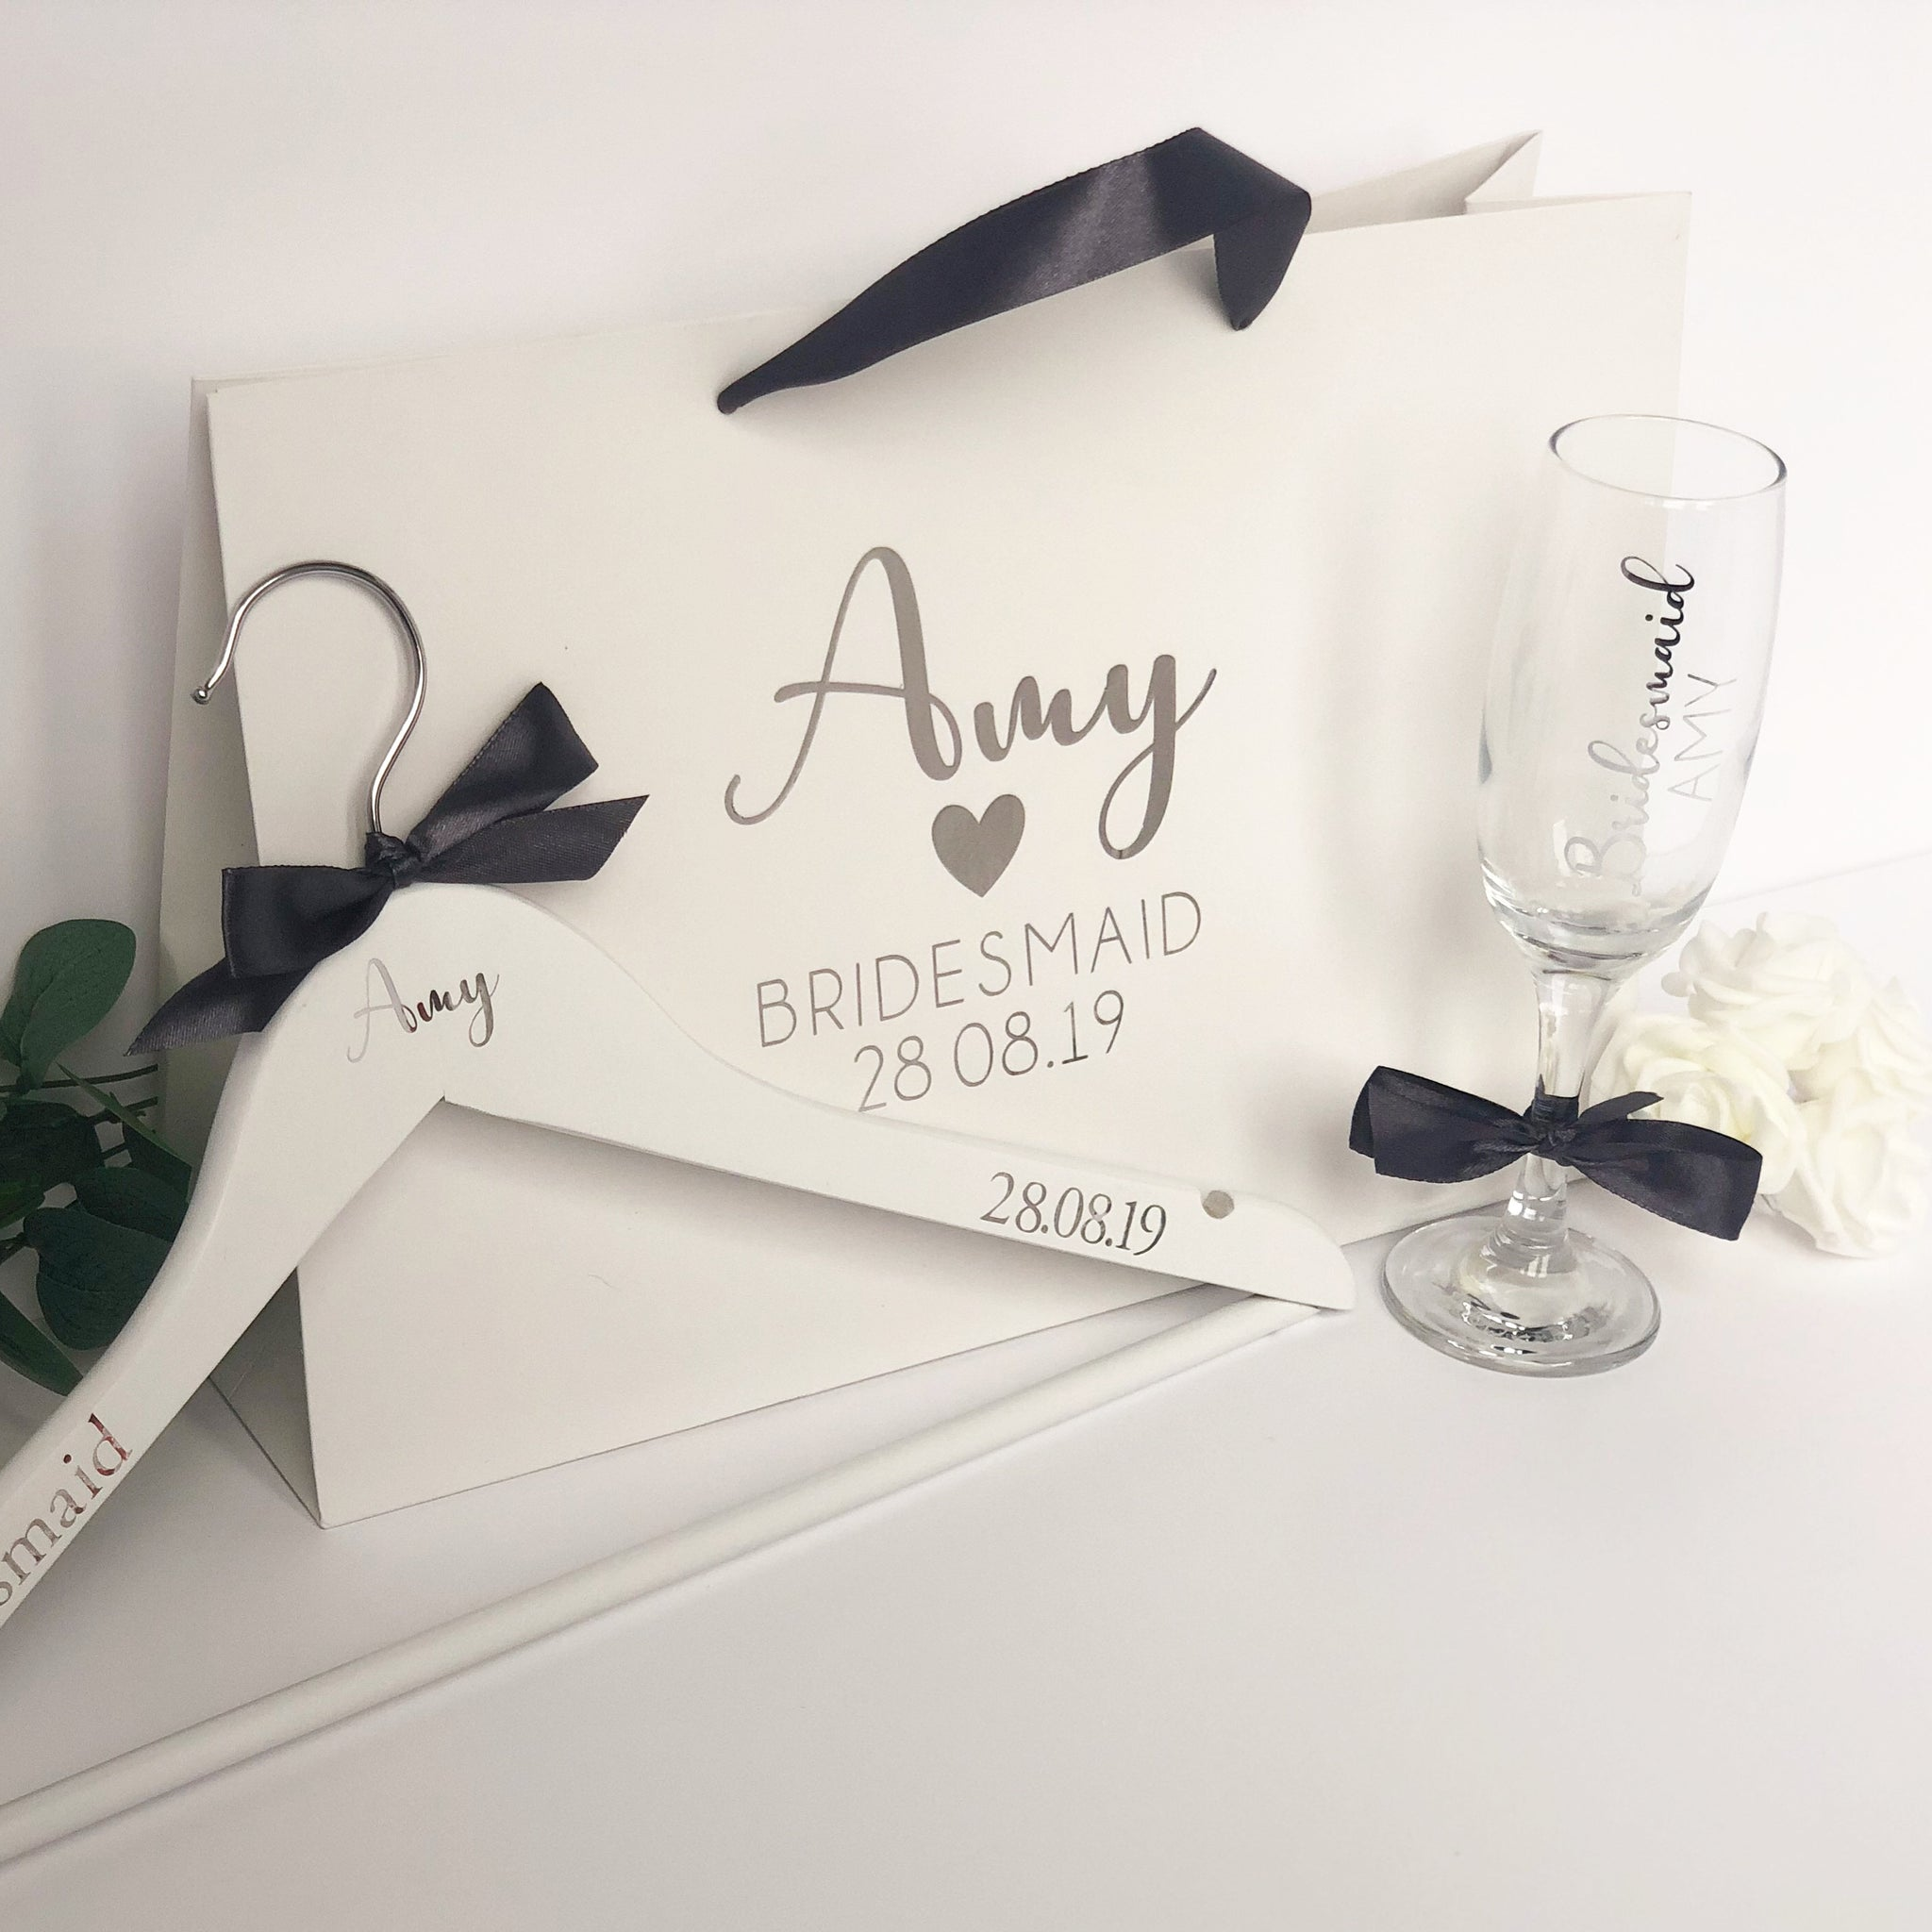 Bridesmaid Gift Set (can be bought separately) Glass, gift bag and Hanger.